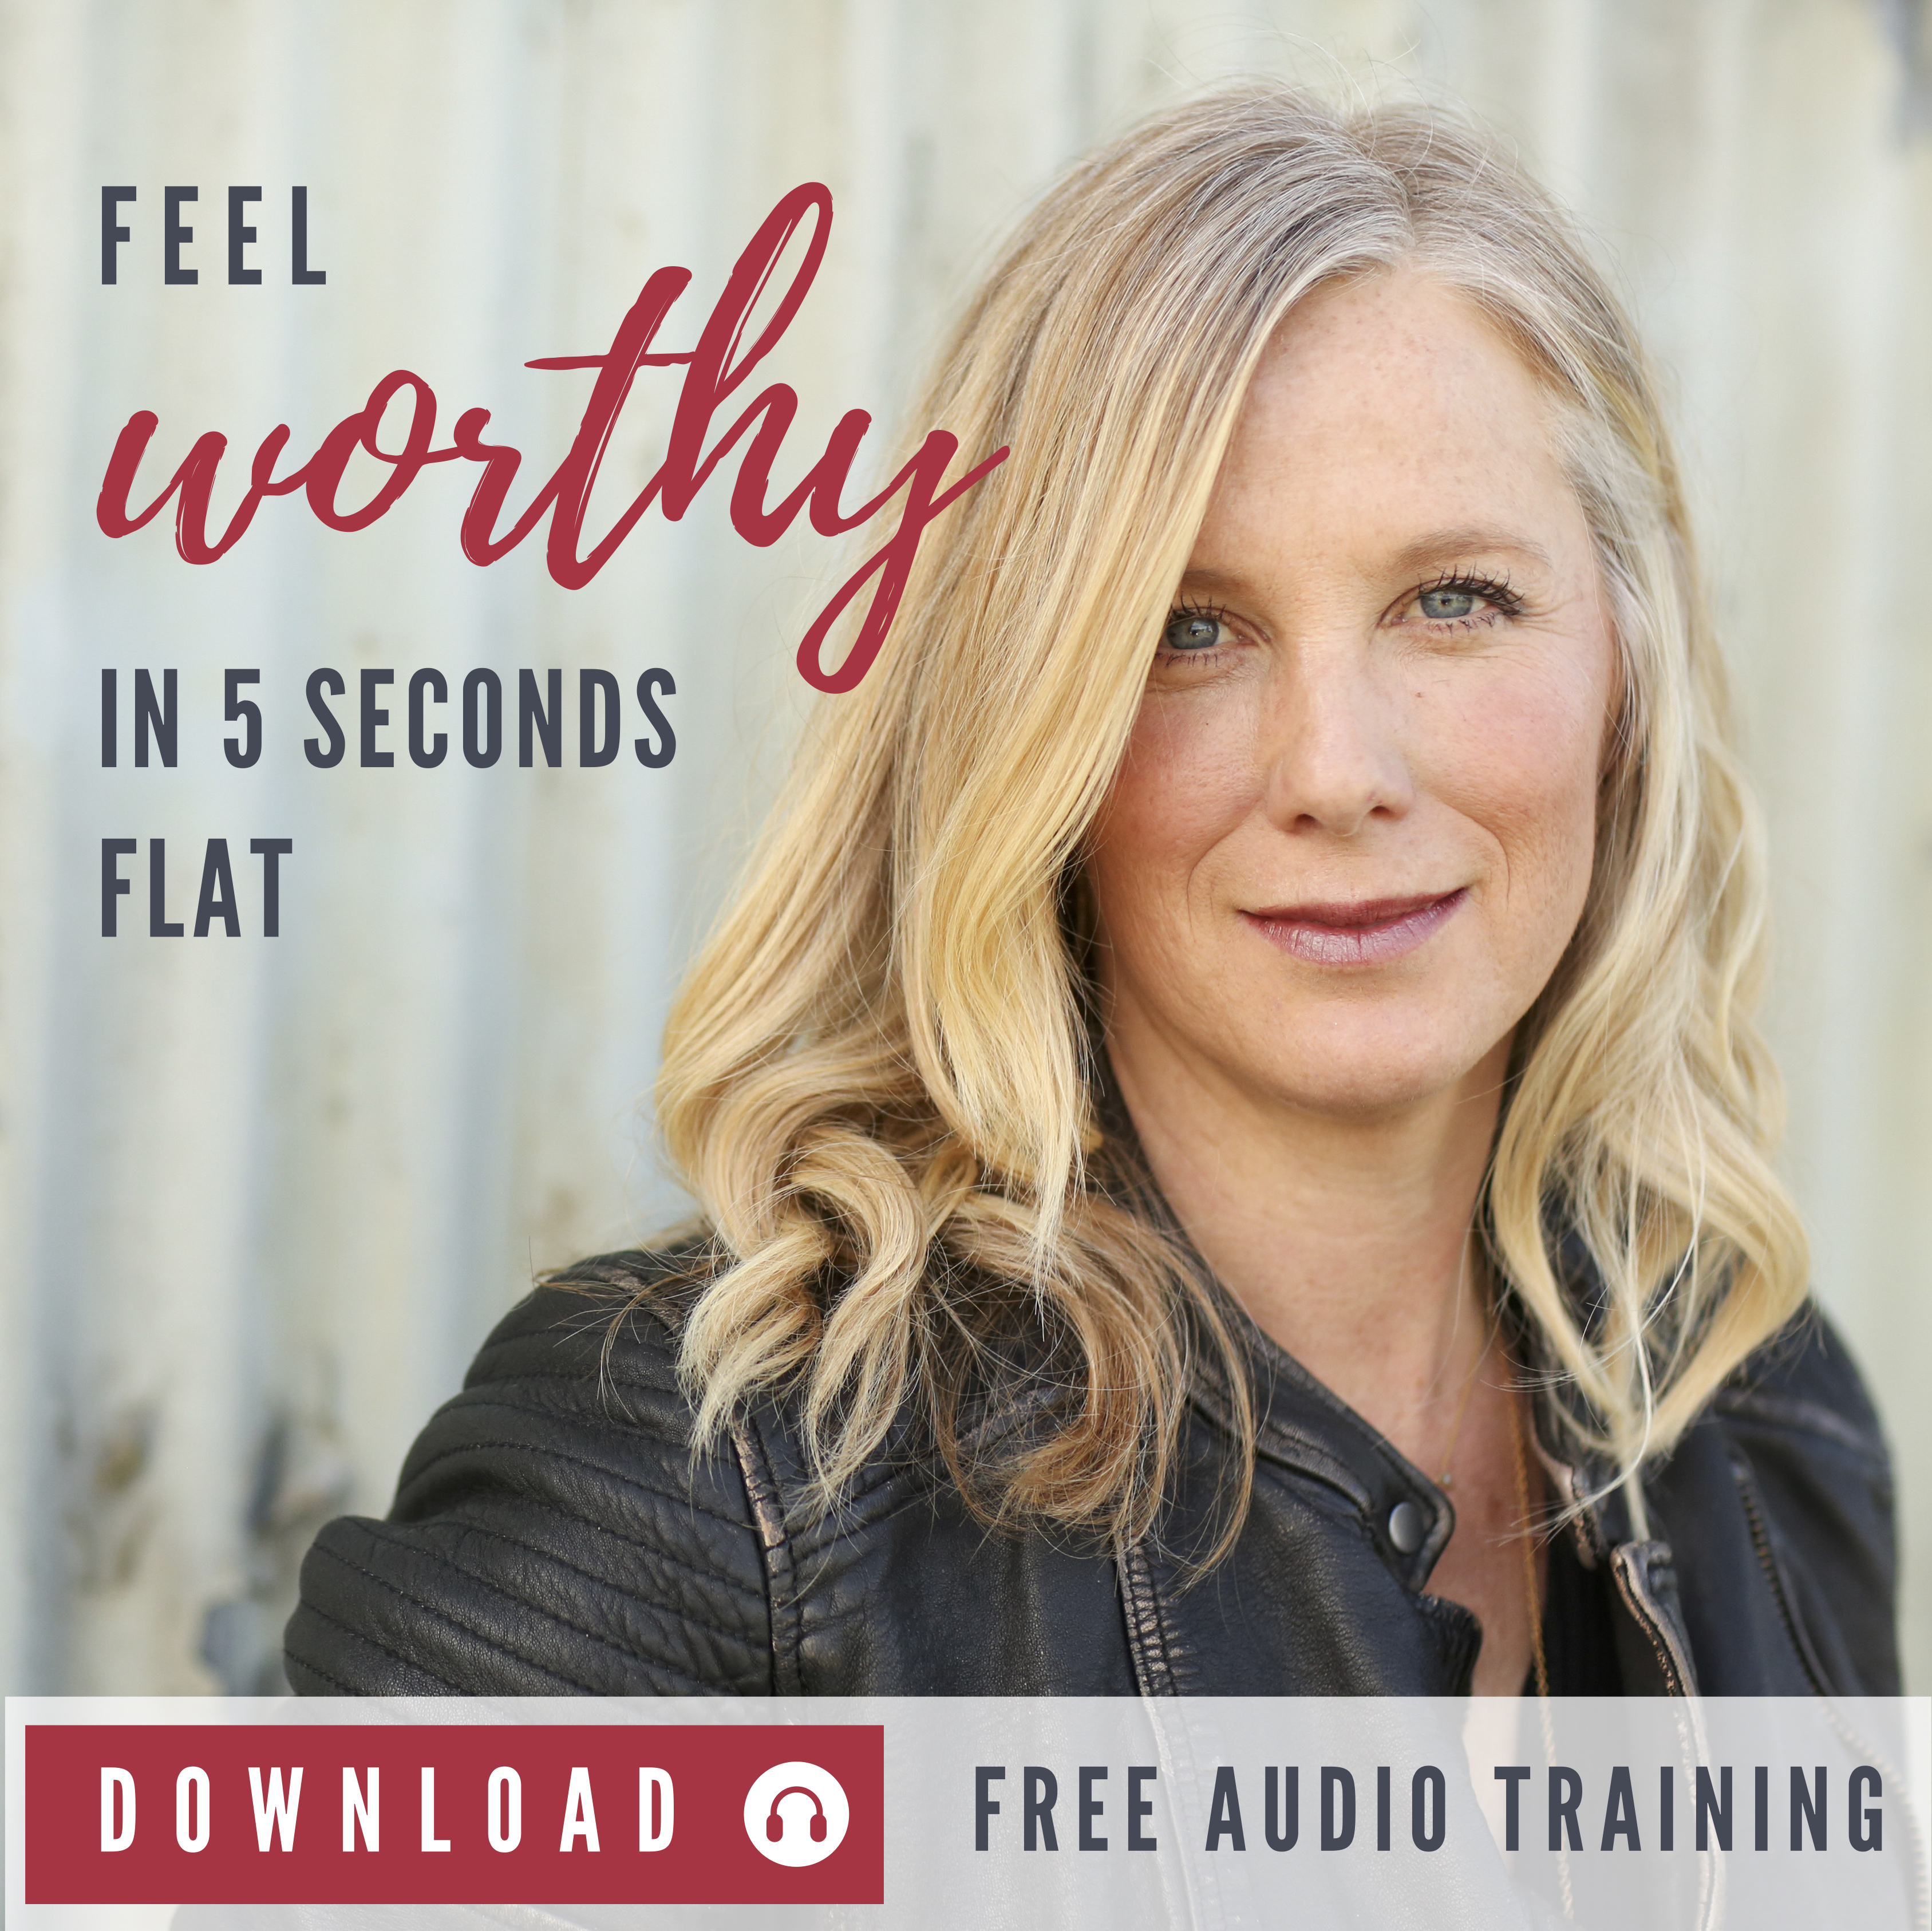 Download Free audio training